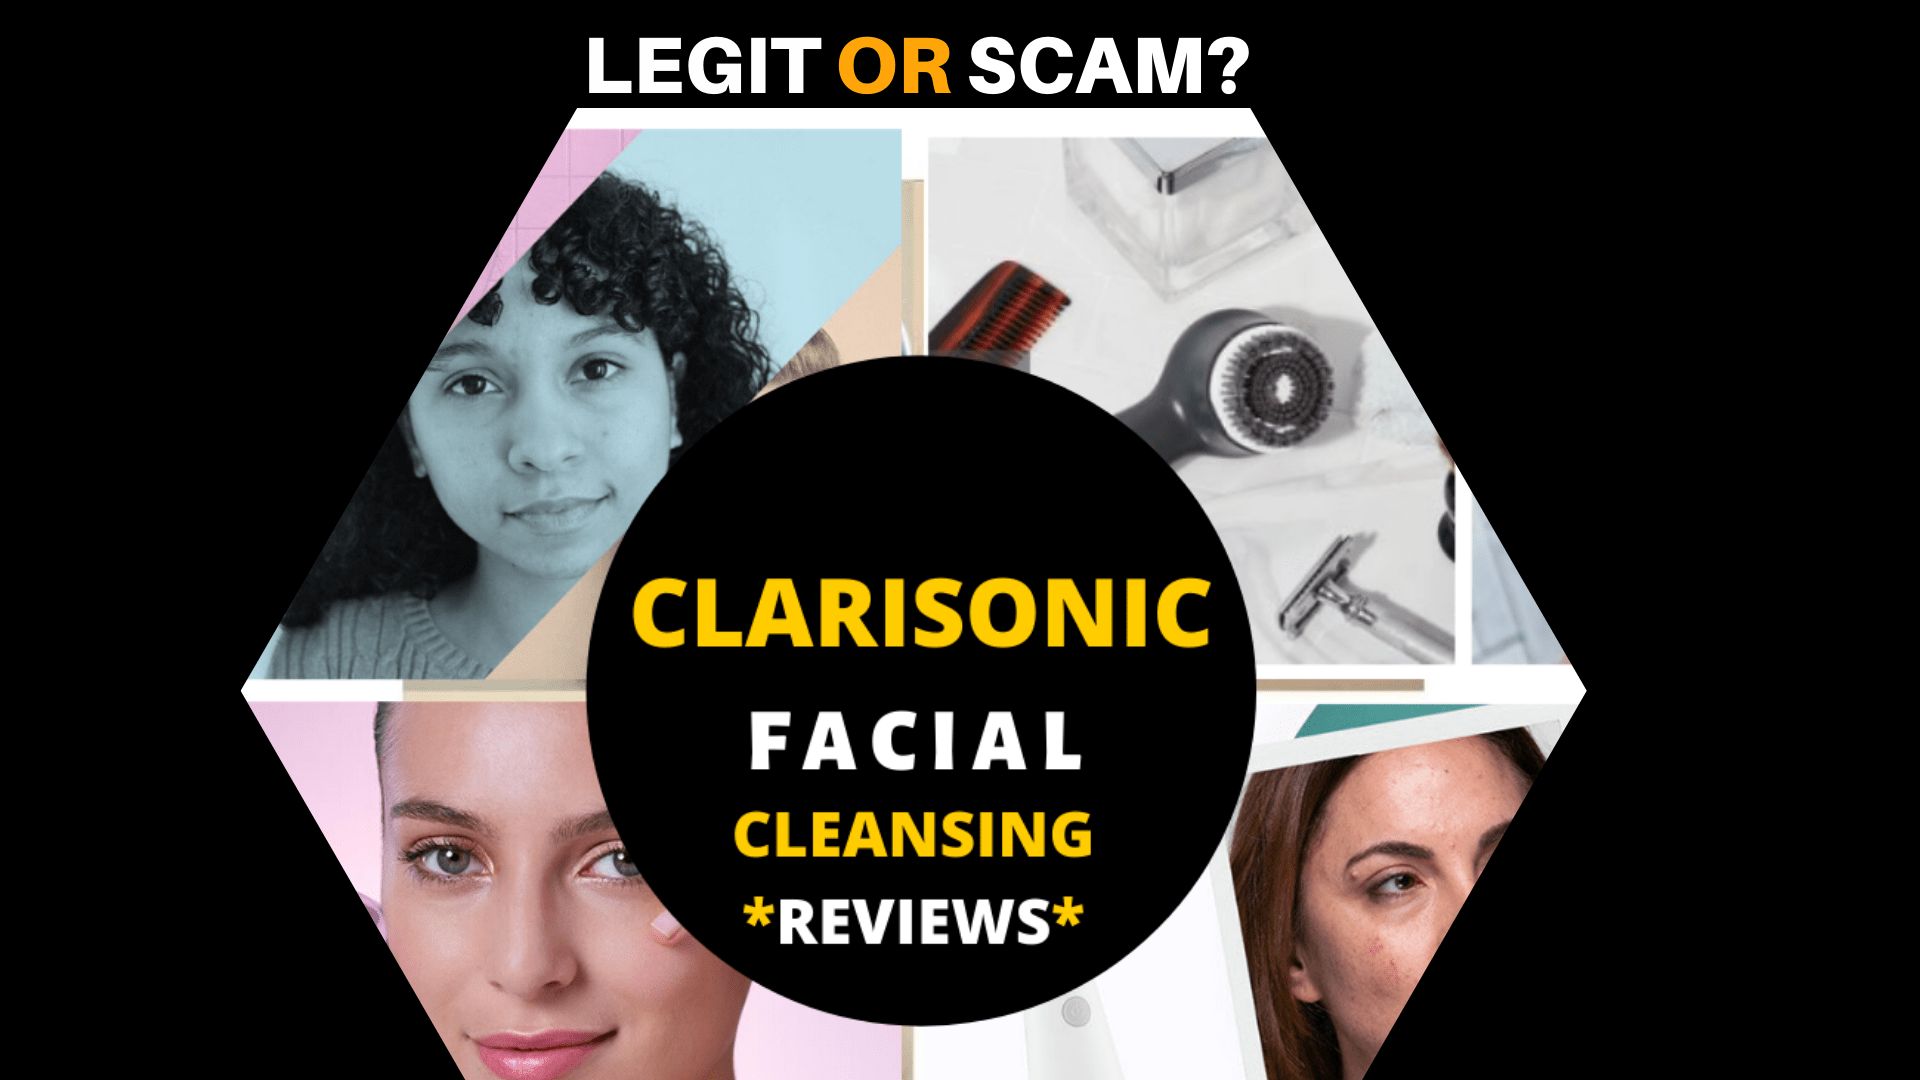 clarisonic facial cleansing reviews,